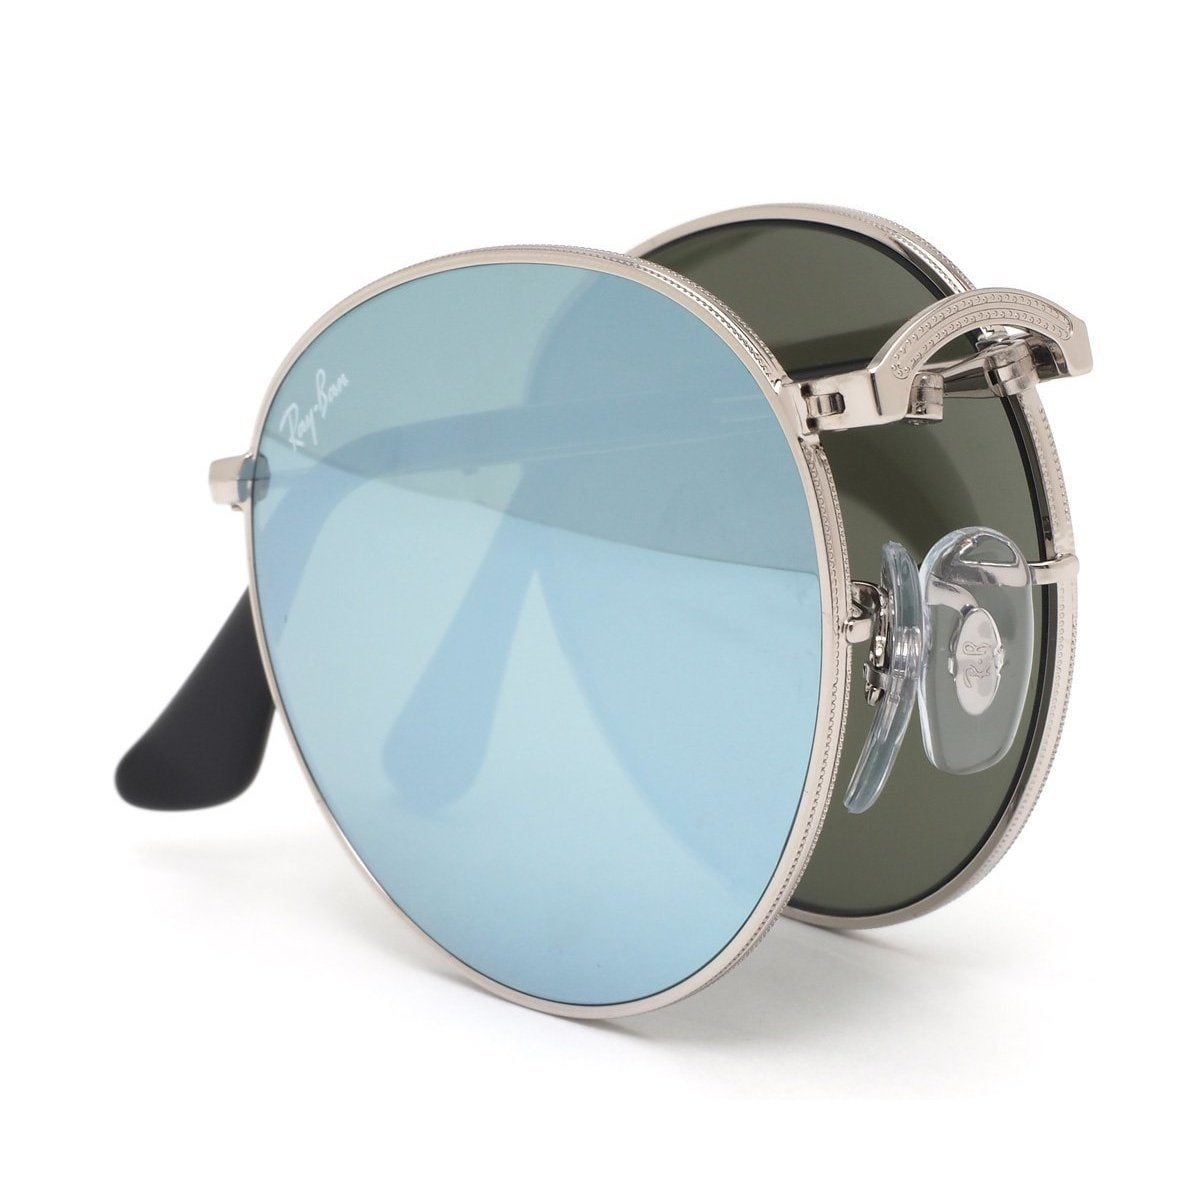 72a428d7e11bf Shop Ray-Ban RB3532 003 30 Round Metal Folding Silver Frame Silver Flash  50mm Lens Sunglasses - Free Shipping Today - Overstock - 11884099